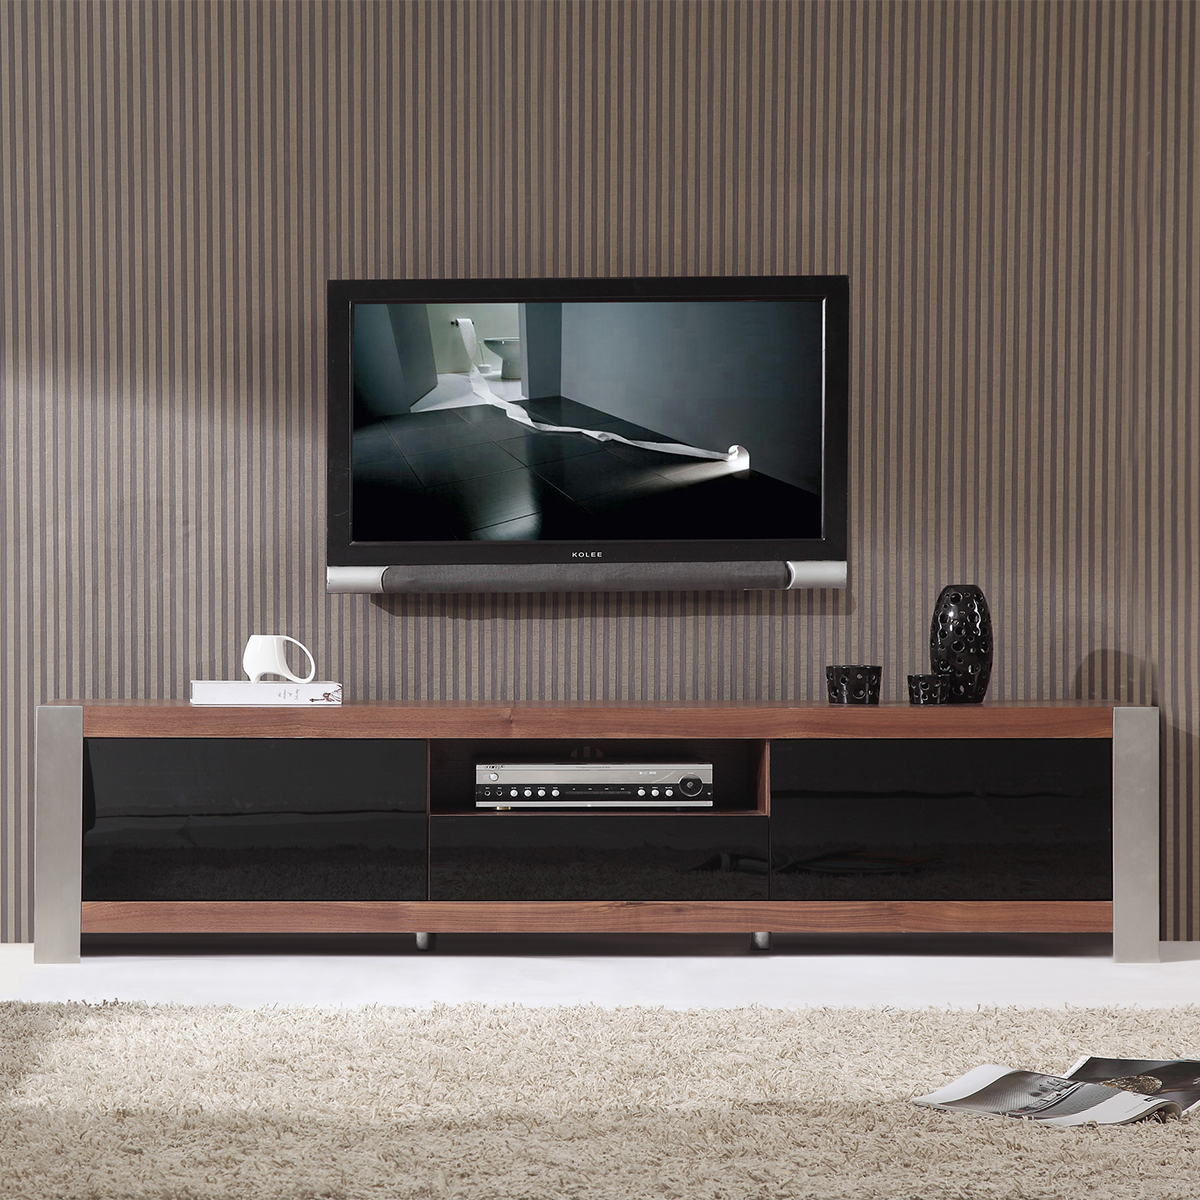 coordinator  contemporary tv stand in light walnut  stainless steel. bmodern minimalist design contemporary tv stands  furniture at